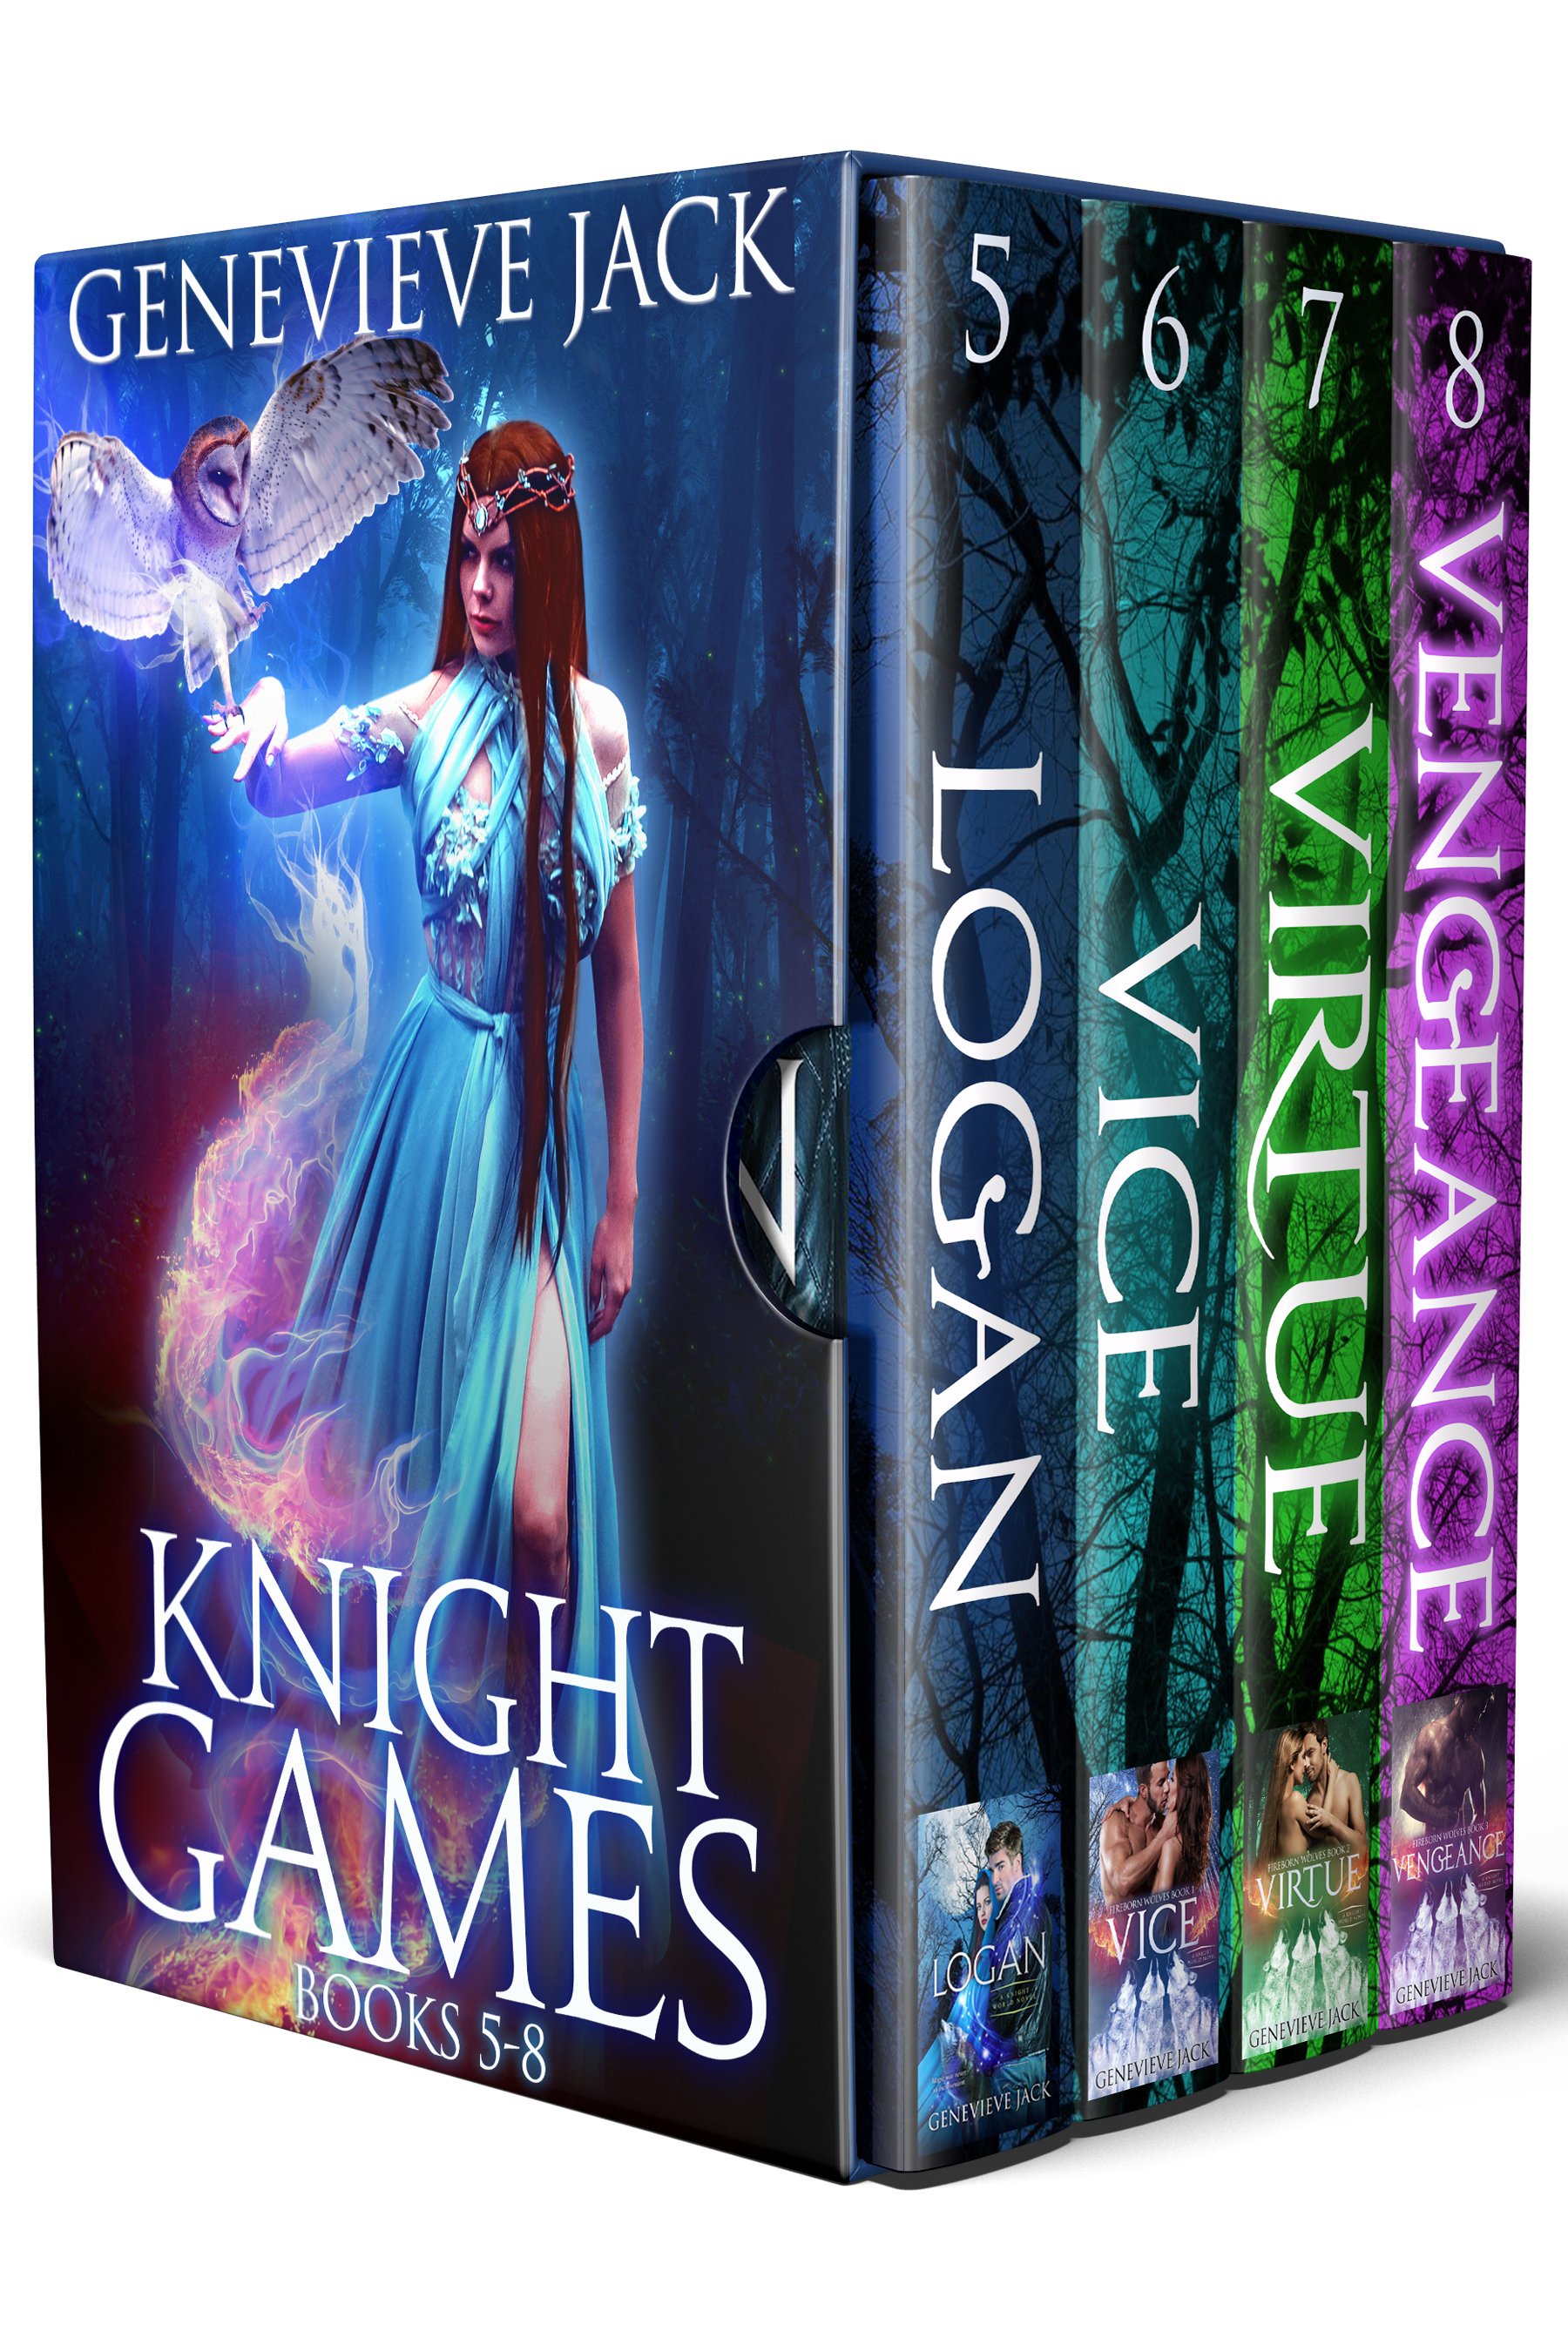 Knight Games Books 5-8